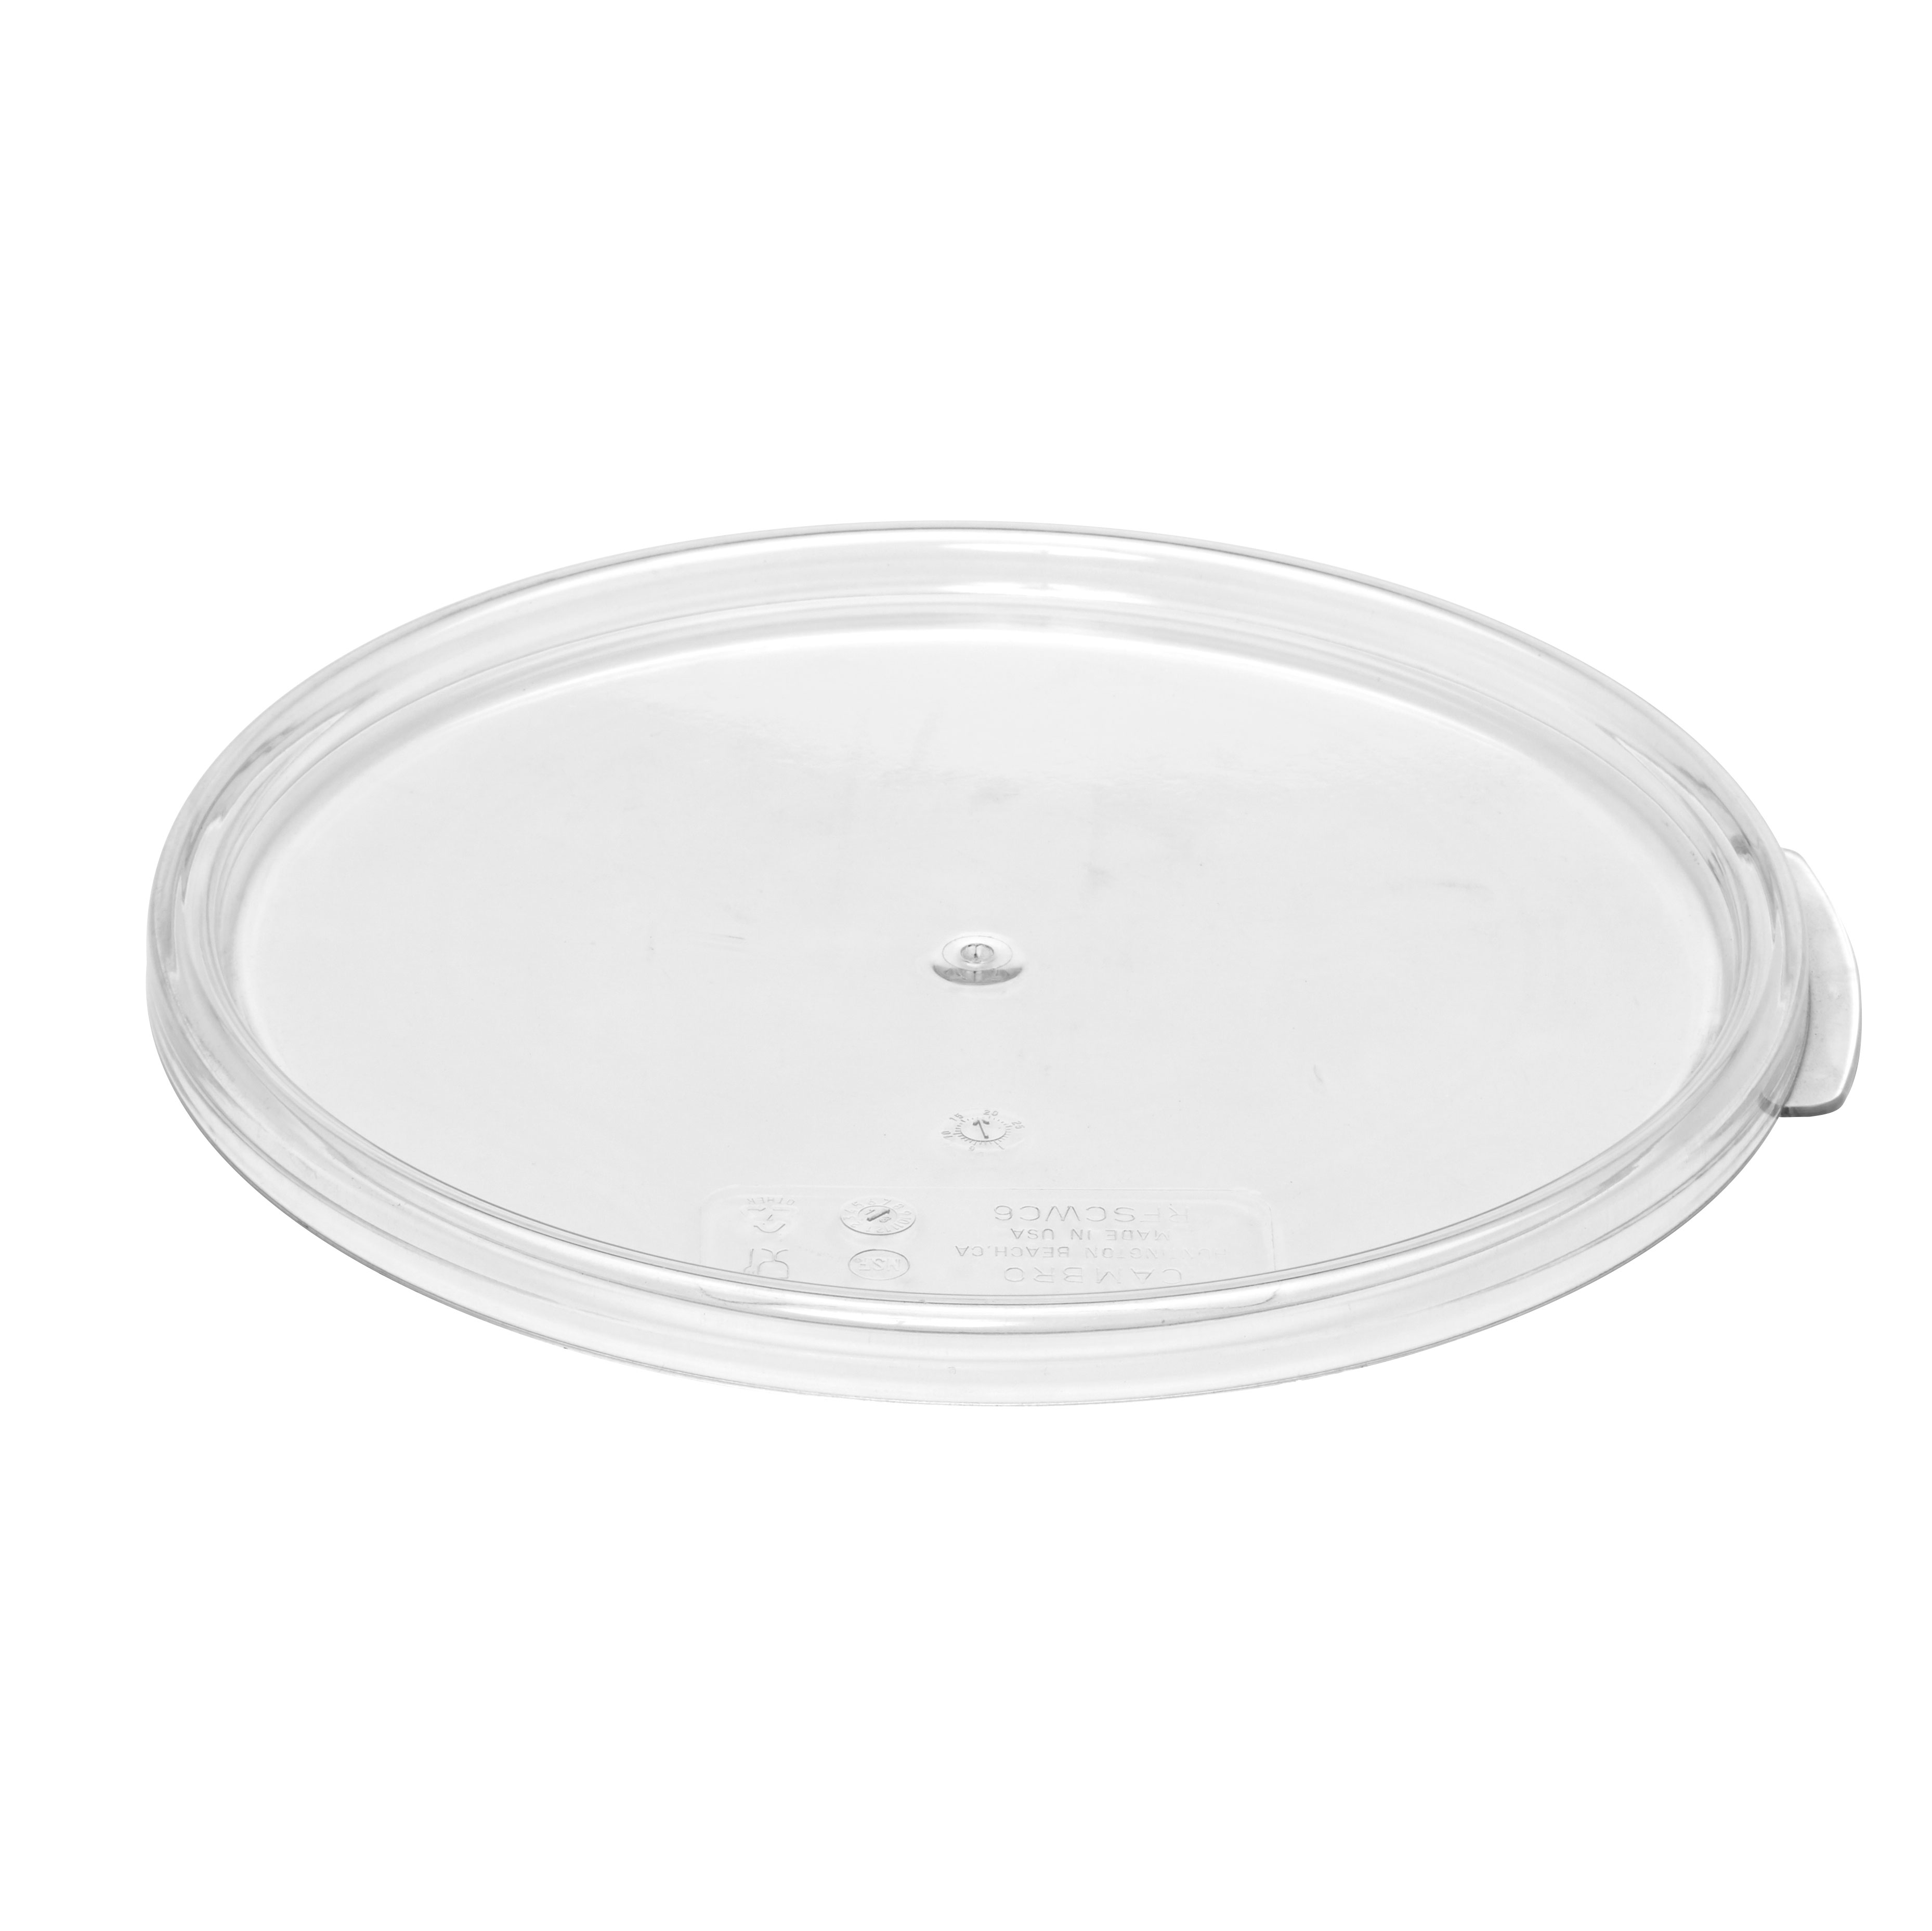 Cambro RFSCWC6135 food storage container cover